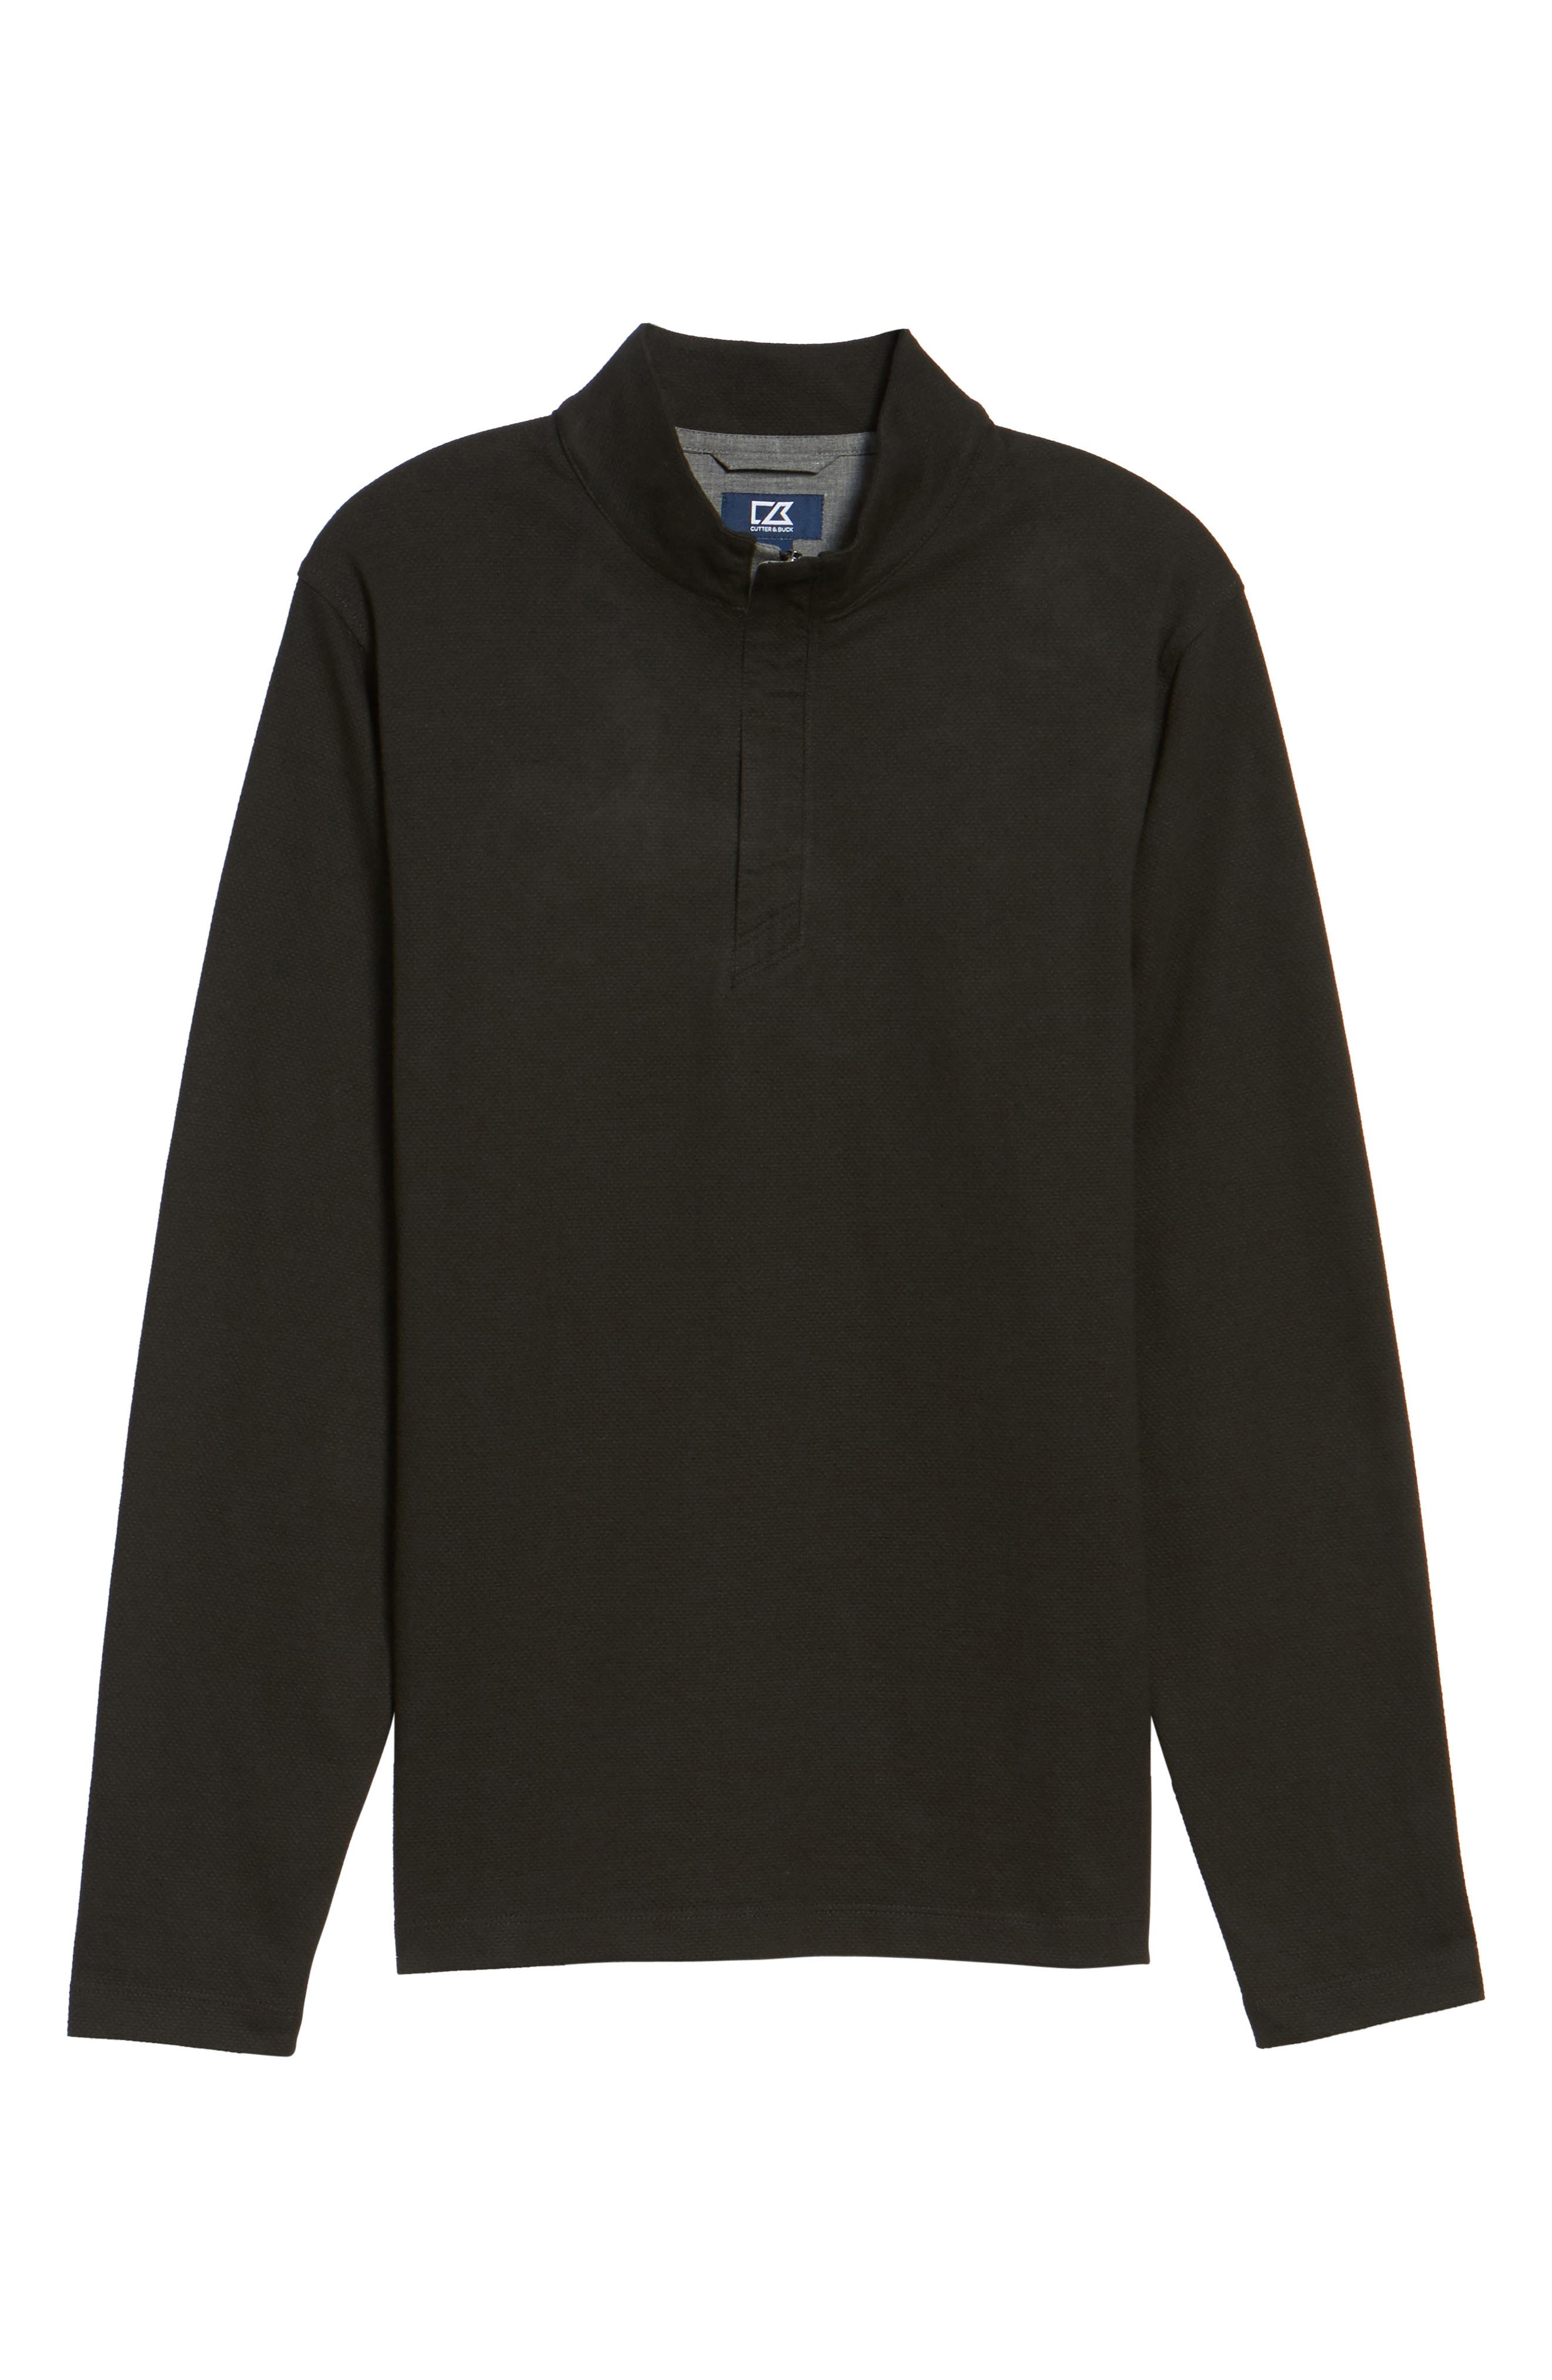 Hewitt Quarter Zip Pullover,                             Alternate thumbnail 6, color,                             001